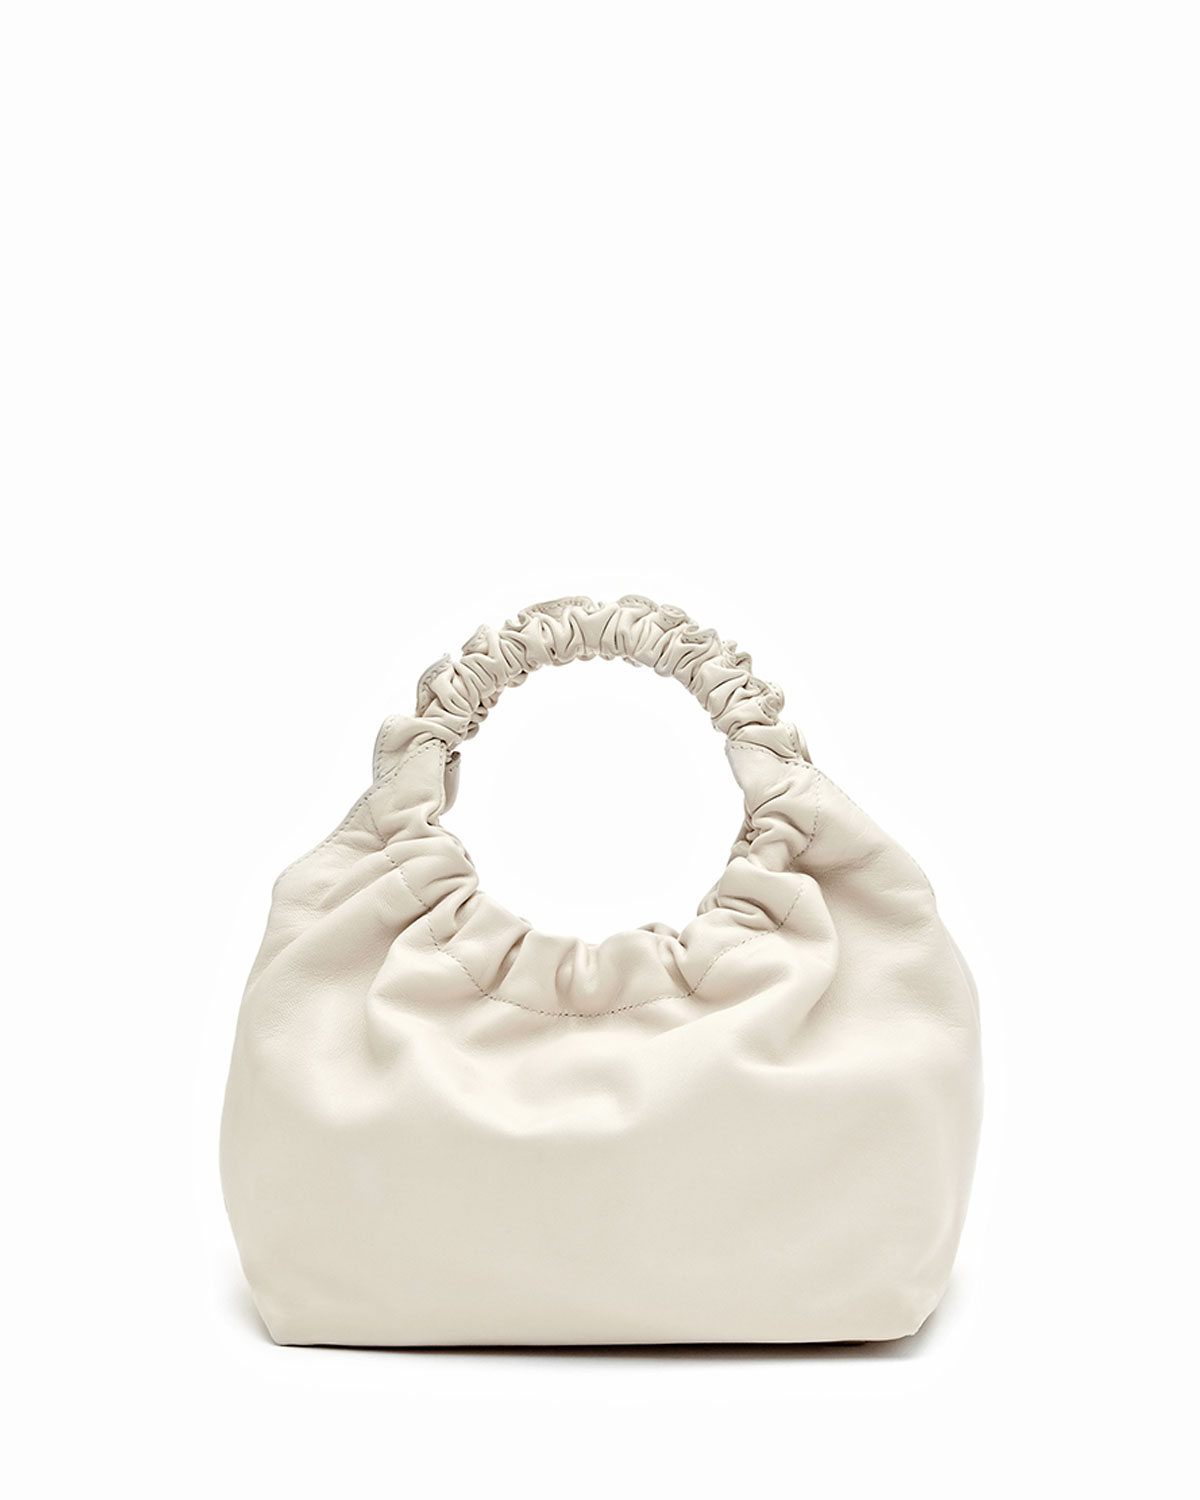 The Row Tops DOUBLE CIRCLE SMALL TOP-HANDLE BAG